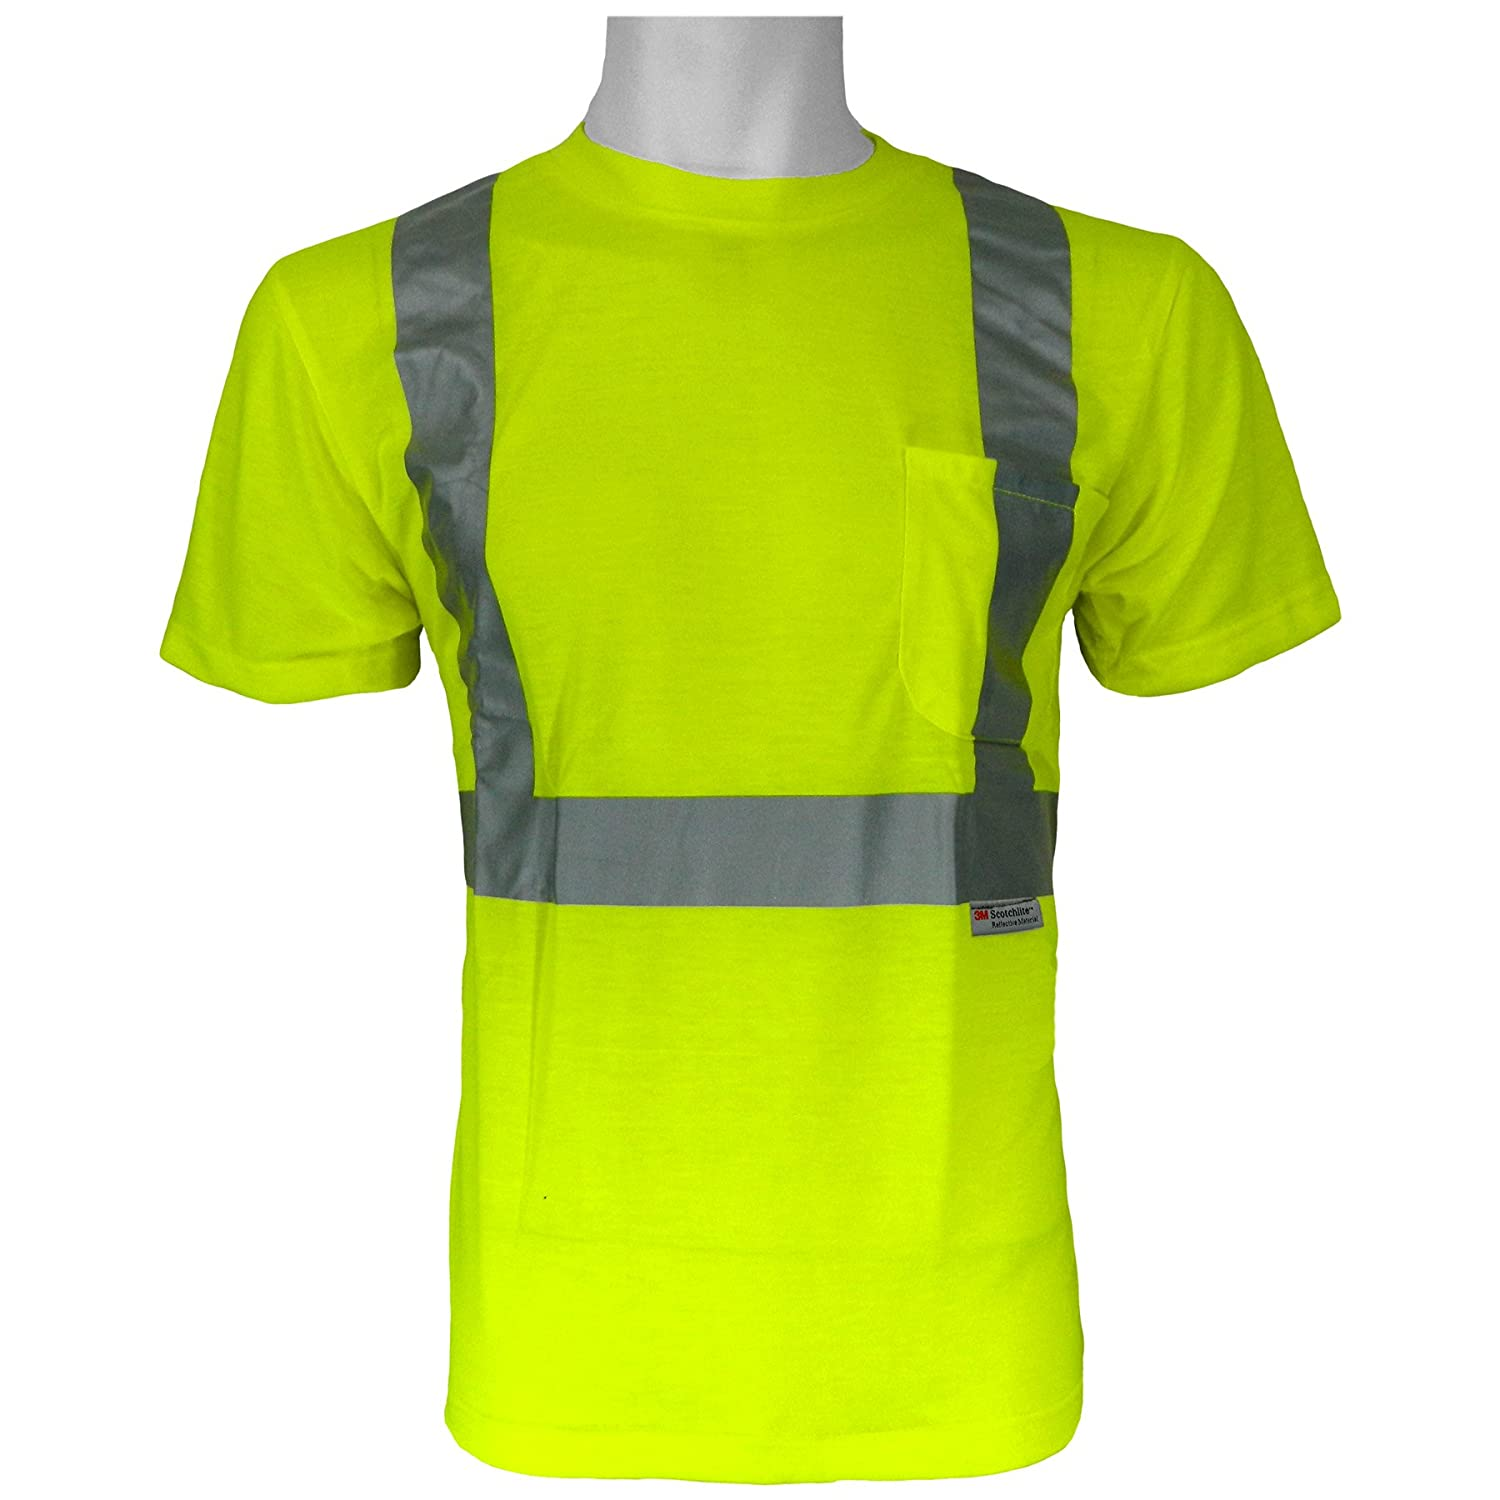 Medium GLO-008-M Lime Global Glove GLO-008 FrogWear Class 2 Safety T-Shirt with 3M Scotchlite Reflective Tape Case of 100